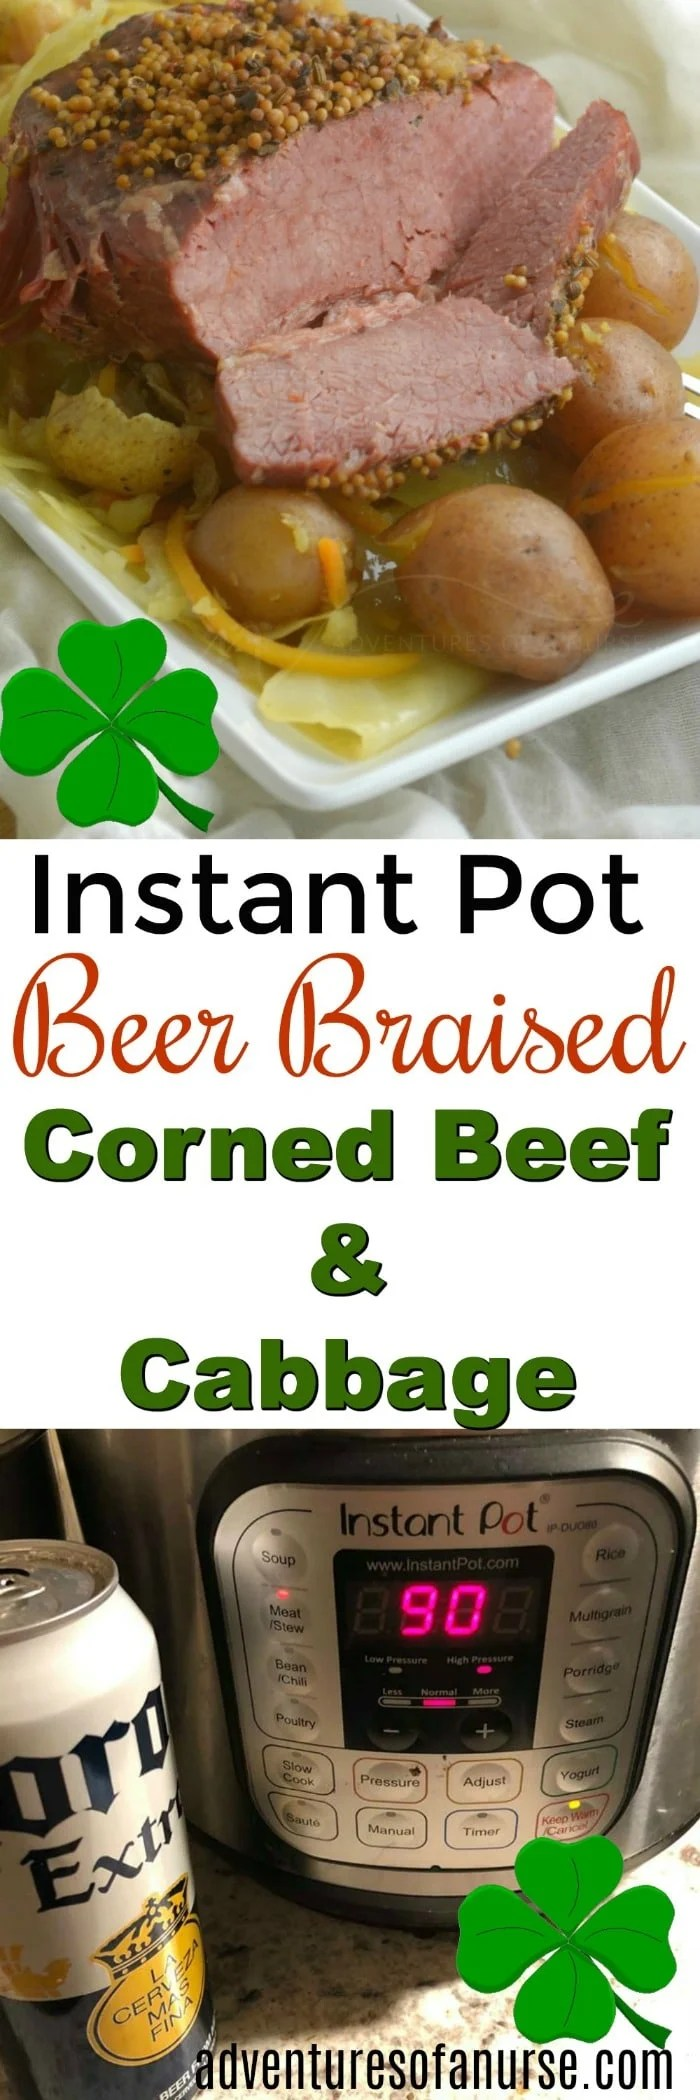 Instant Pot Beer Braised Corned Beef and Cabbage with Potatoes